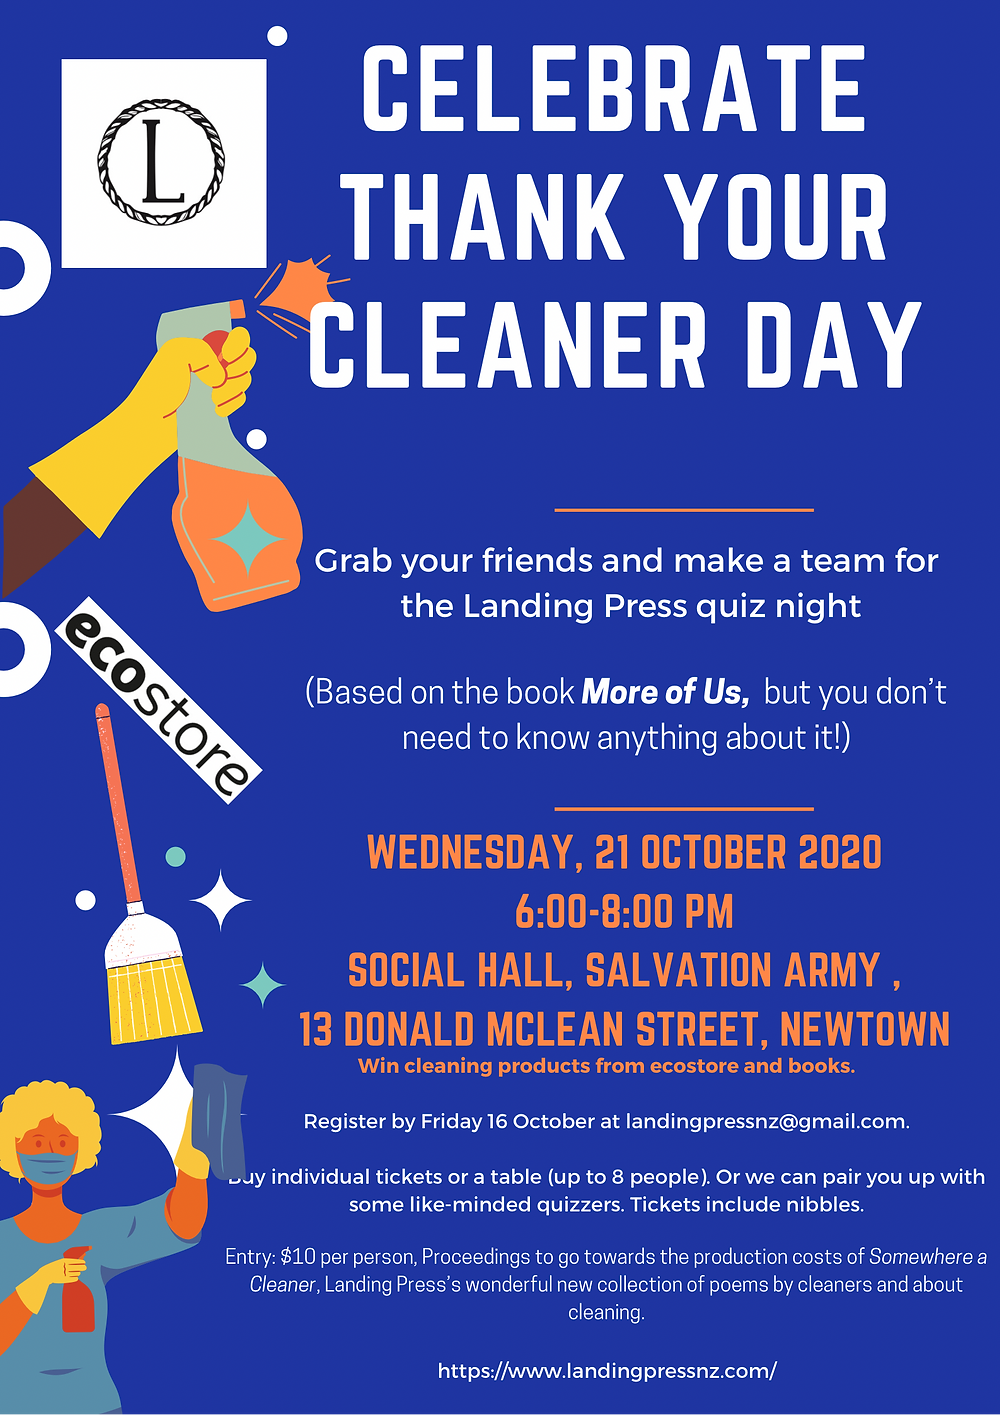 Thank your cleaner day poster